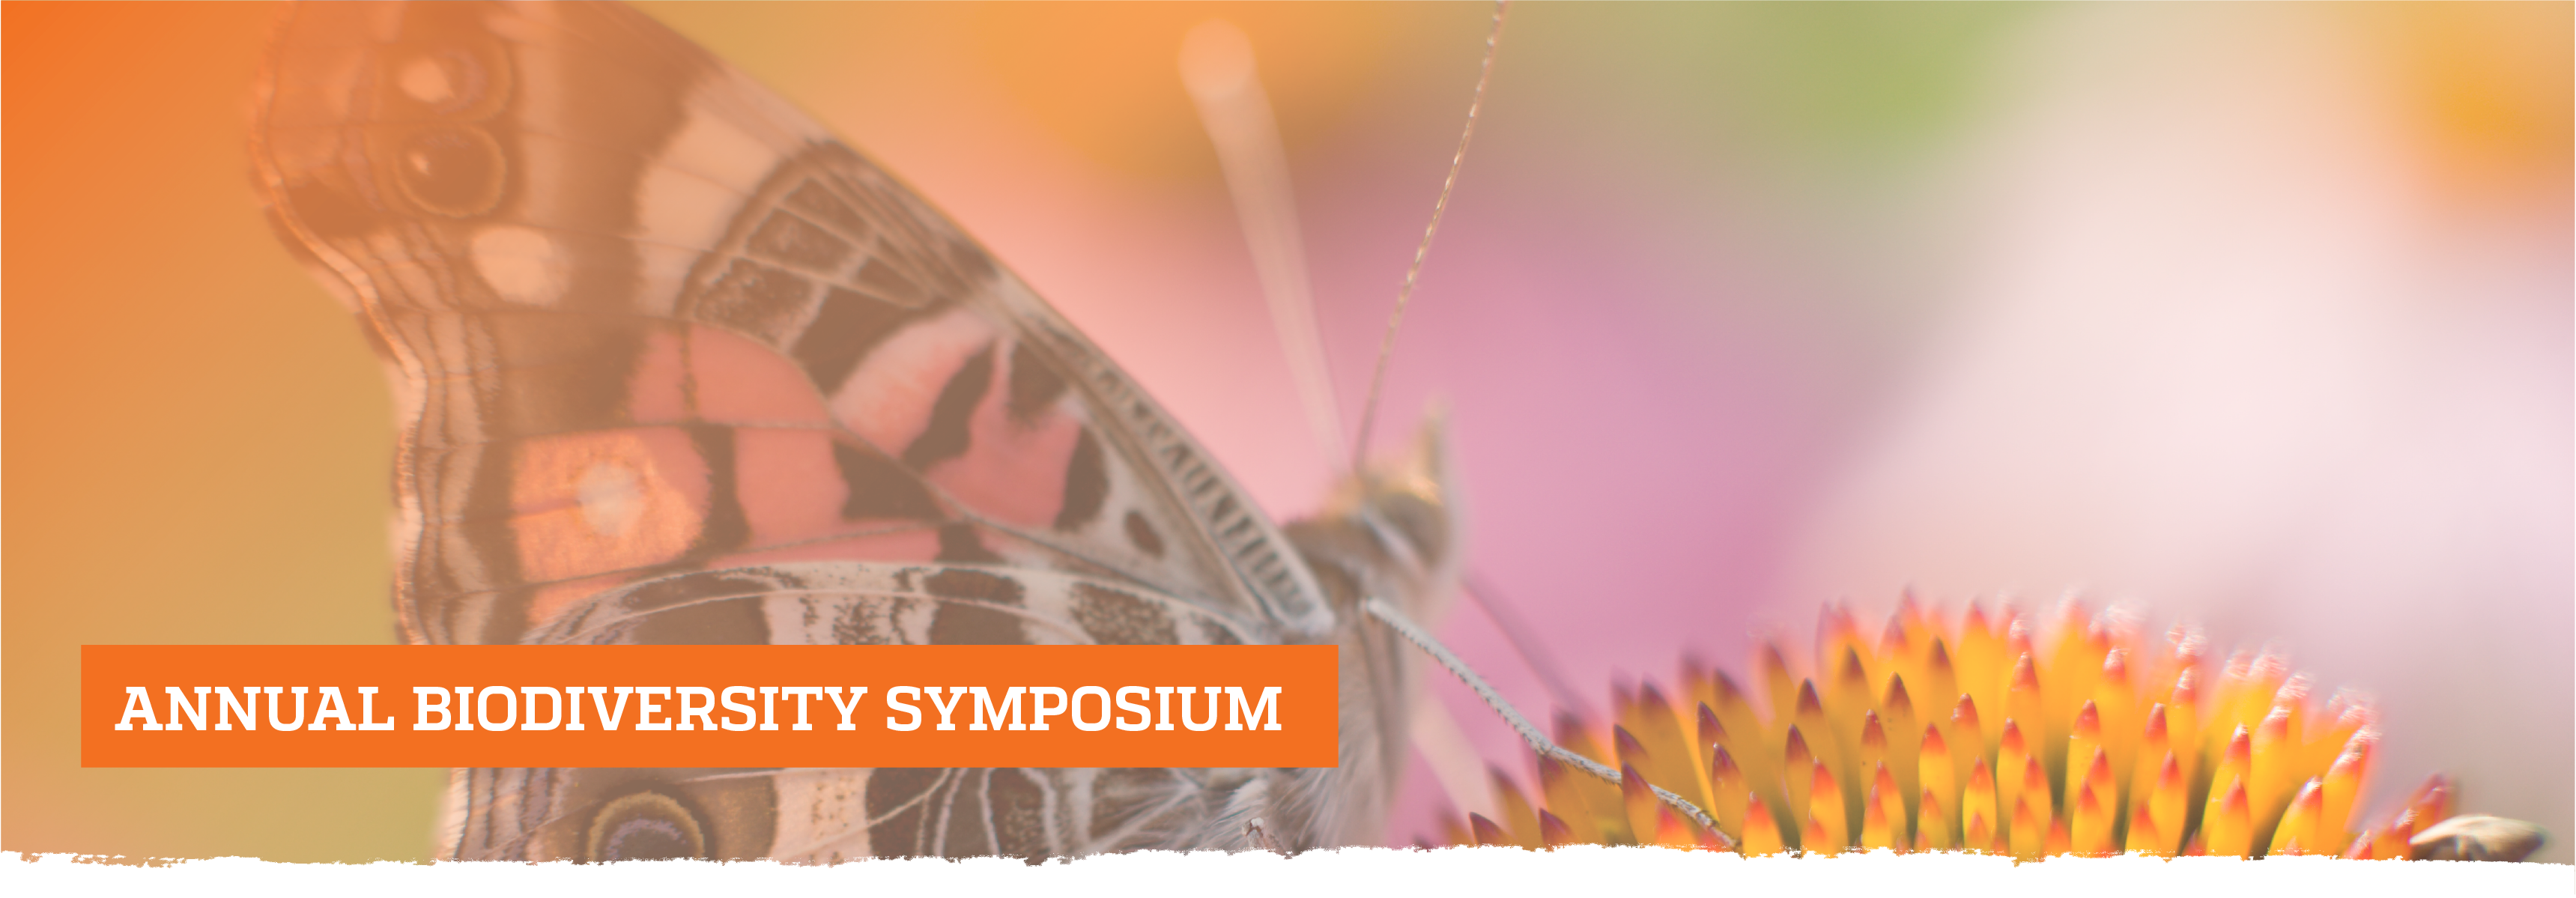 Butterfly on flower; Annual Biodiversity Symposium